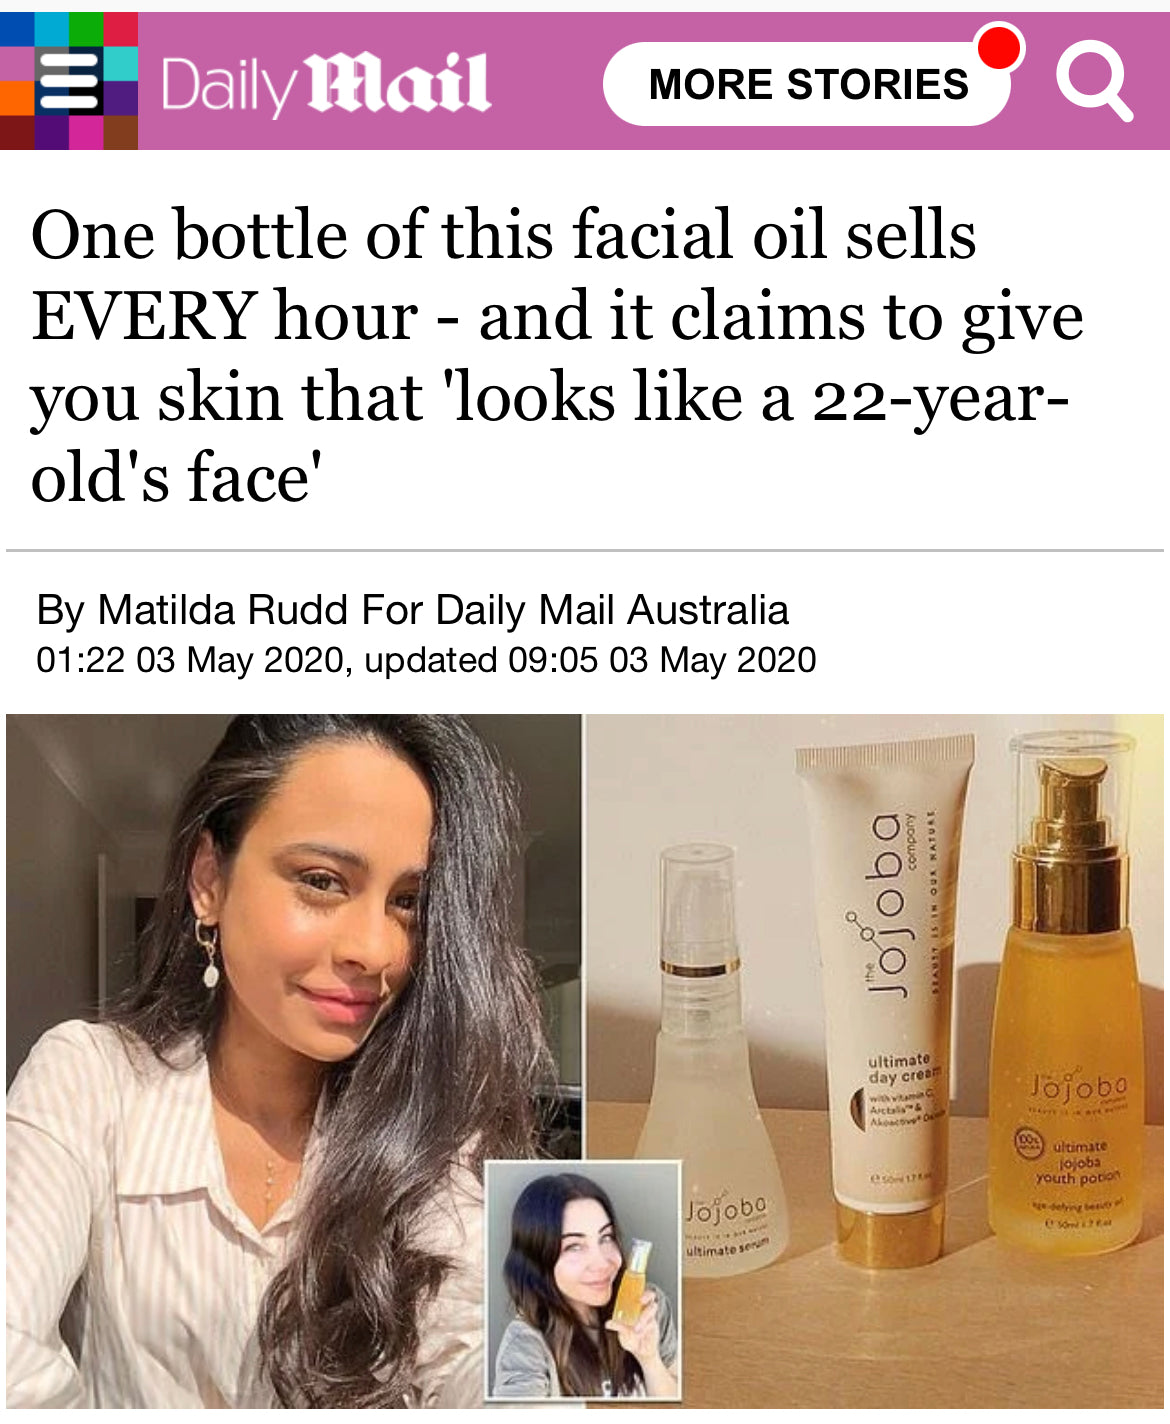 One bottle of this facial oil sells EVERY hour - and it claims to give you skin that 'looks like a 22-year-old's face